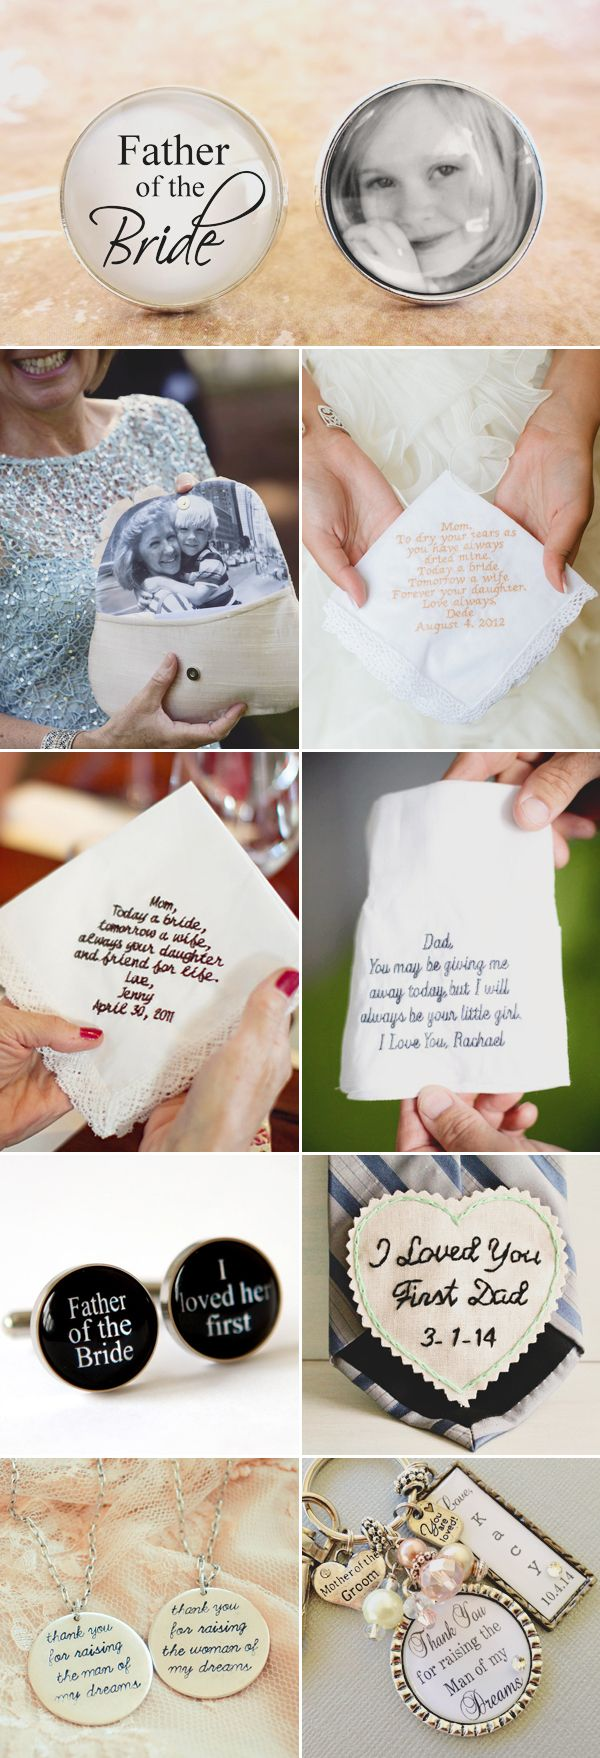 Special Wedding Gifts From Parents : Parent Wedding Gifts on Pinterest 25th Anniversary Gifts, Wedding ...